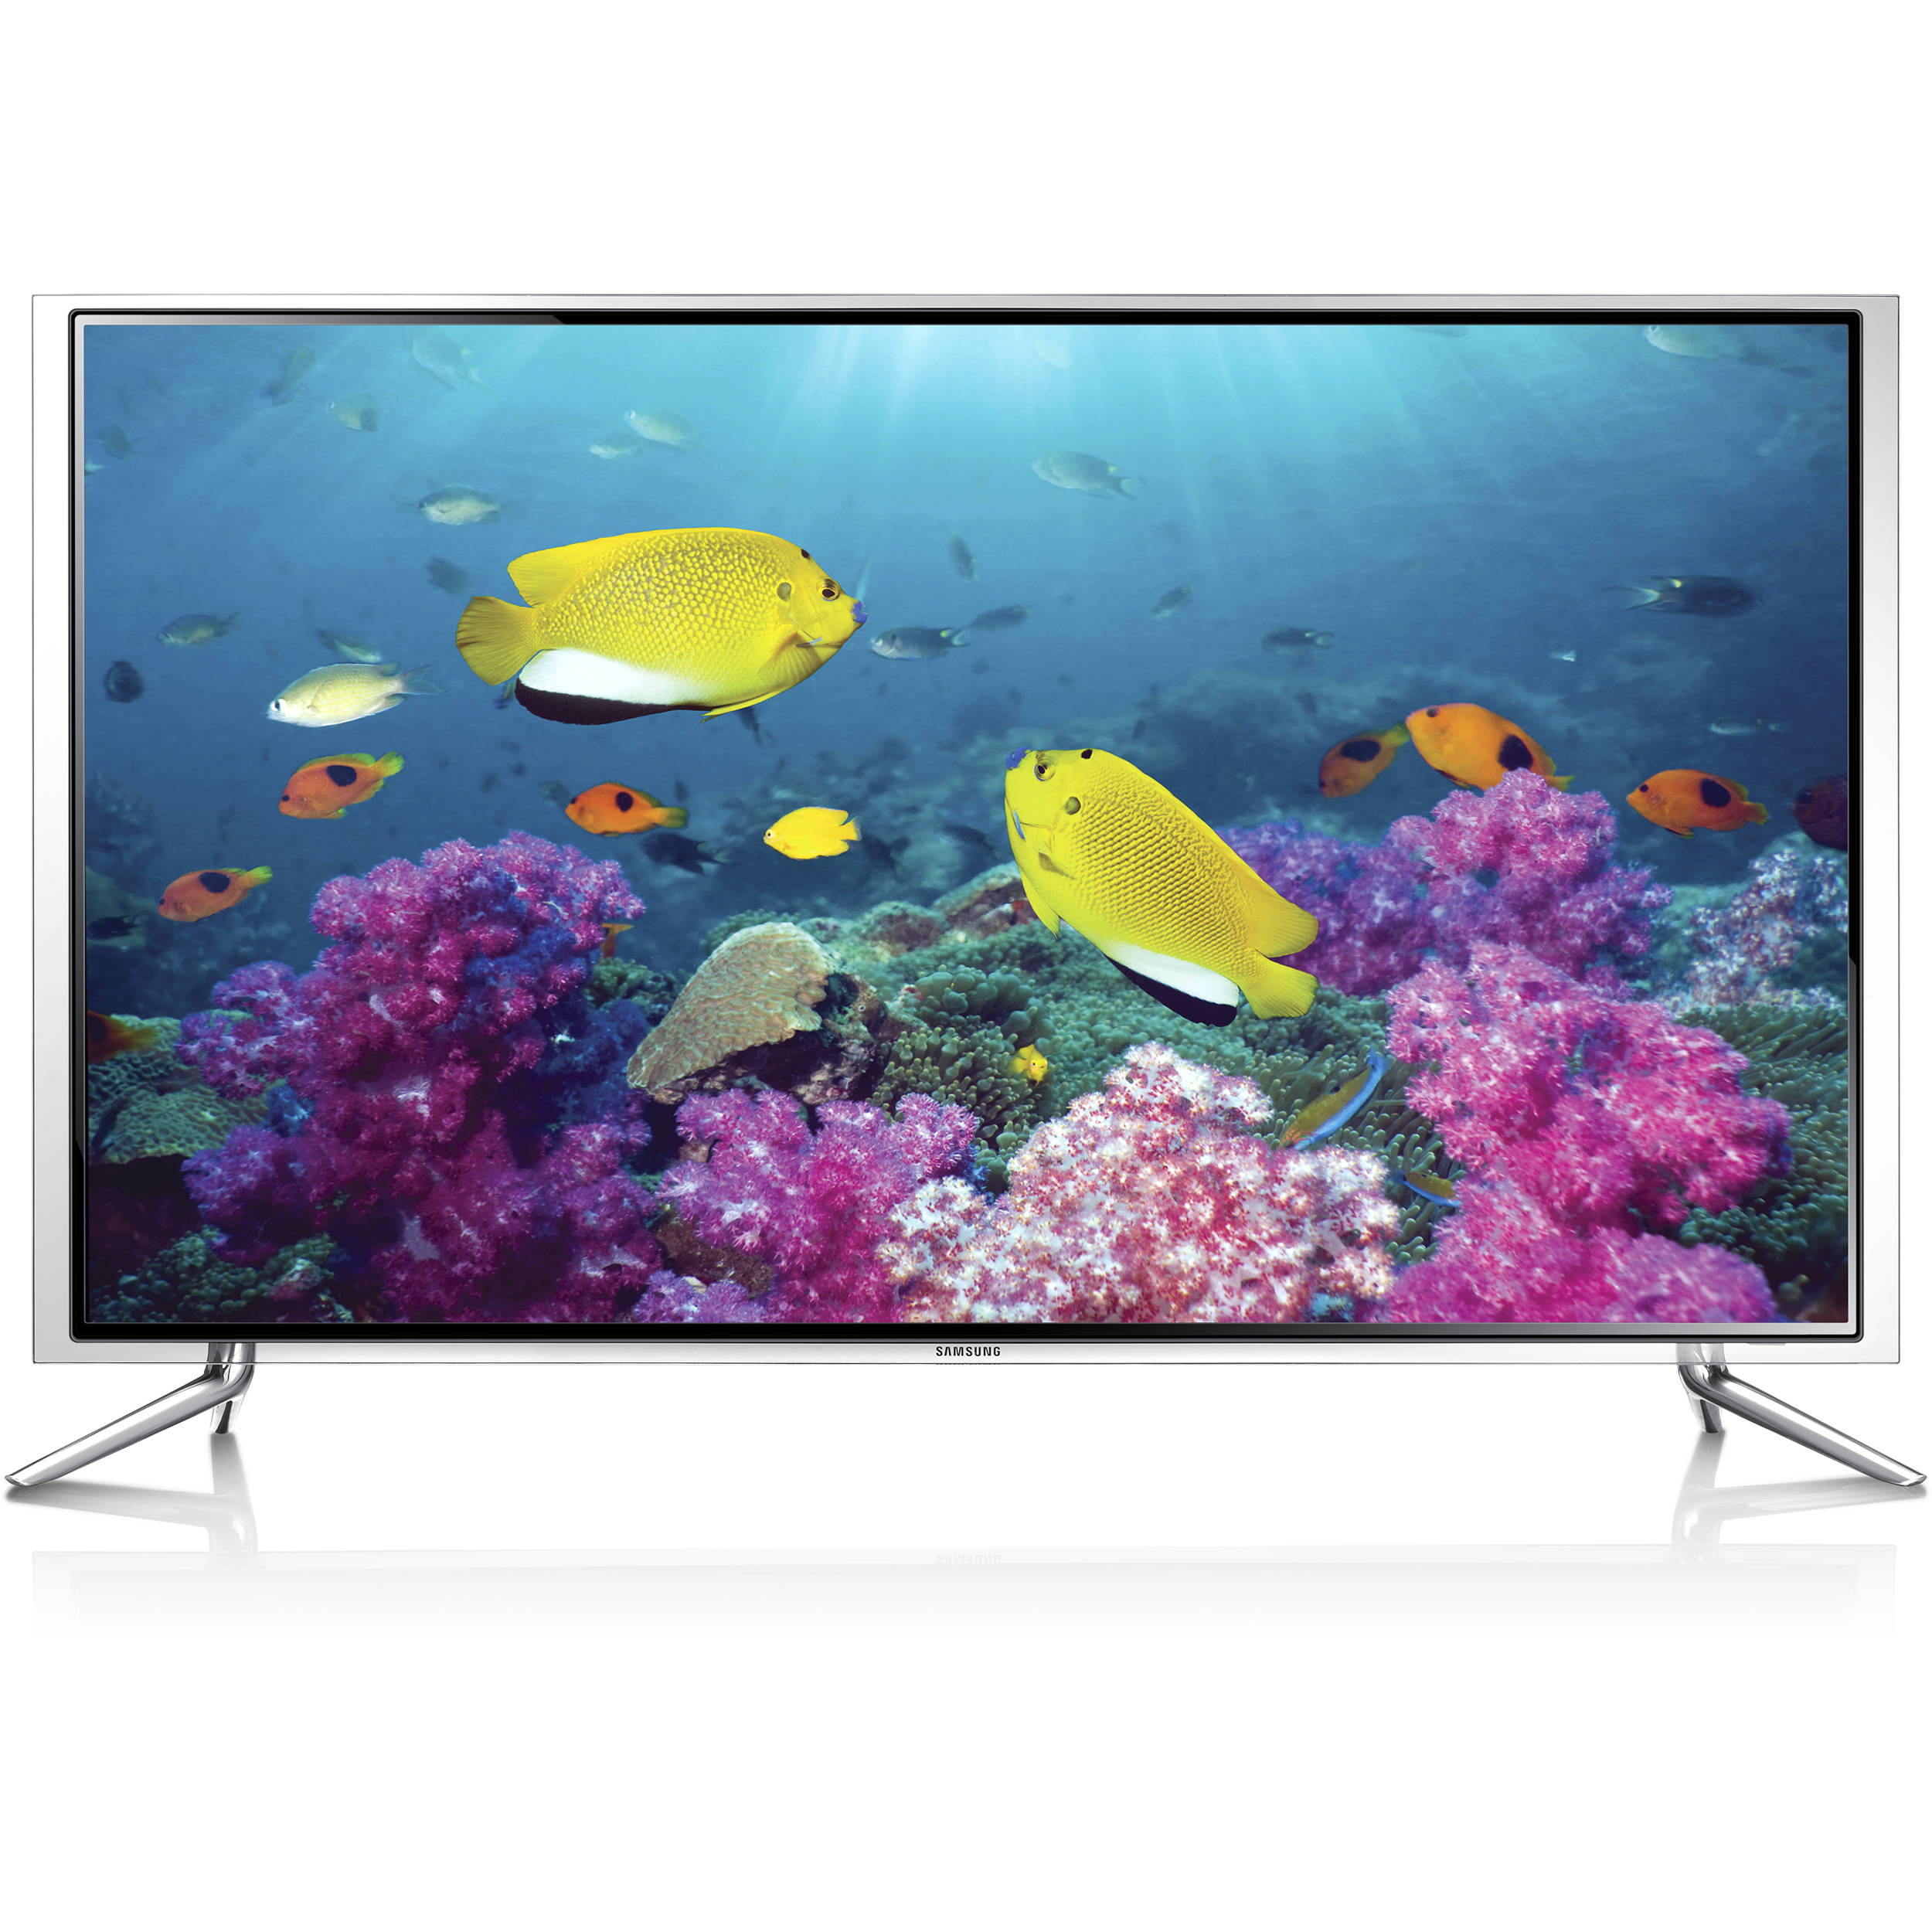 "Hd 3d Tv Prices Floureon 1080p Full Hd Portable Camcorder Review Panasonic 65 Oled 4k Ultra Hd Tv Th 65ez950u Panasonic Th 55ex600a 55 Inch 4k Ultra Hd Smart Tv: Samsung 46"" 6800 Full HD Smart 3D LED TV UN46F6800AFXZA B&H"